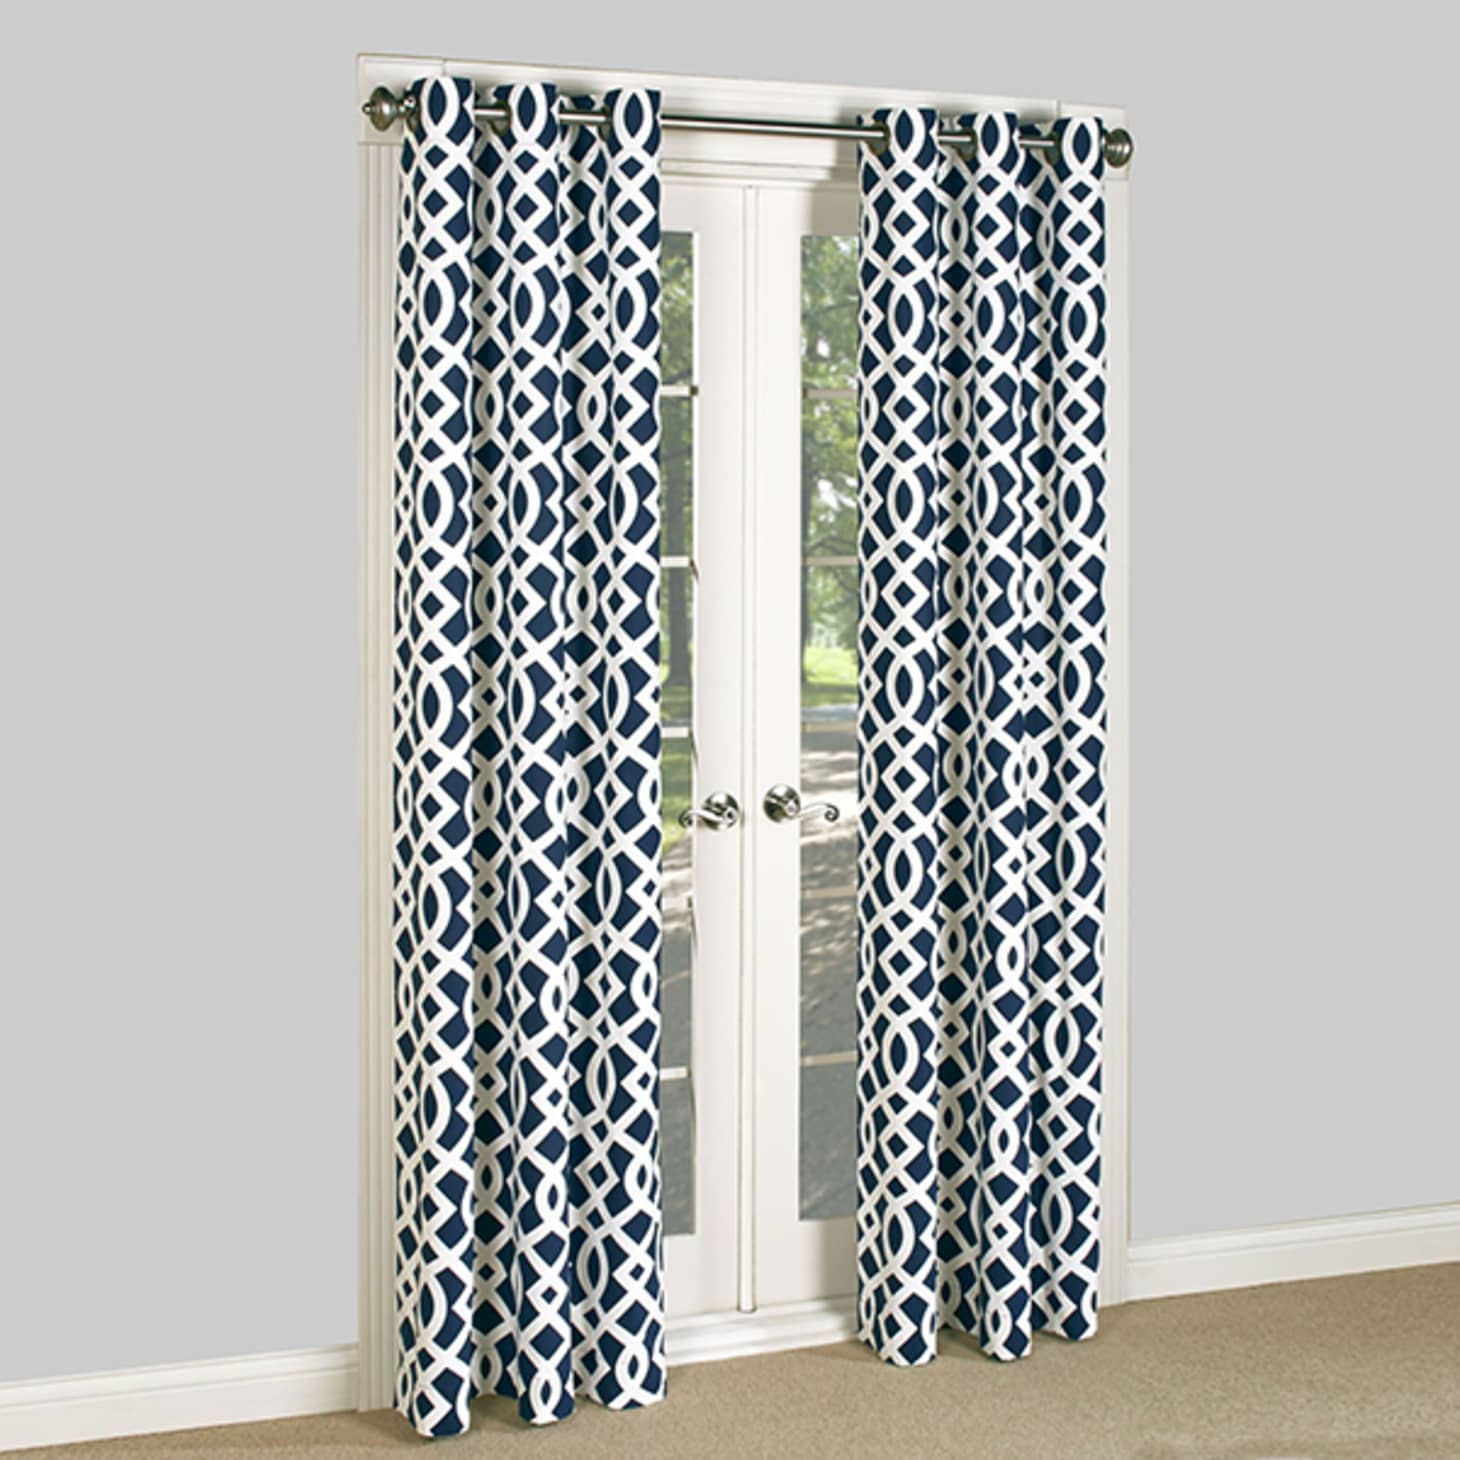 Best Insulated Blackout Curtains | Apartment Therapy For Thermal Rod Pocket Blackout Curtain Panel Pairs (View 24 of 30)